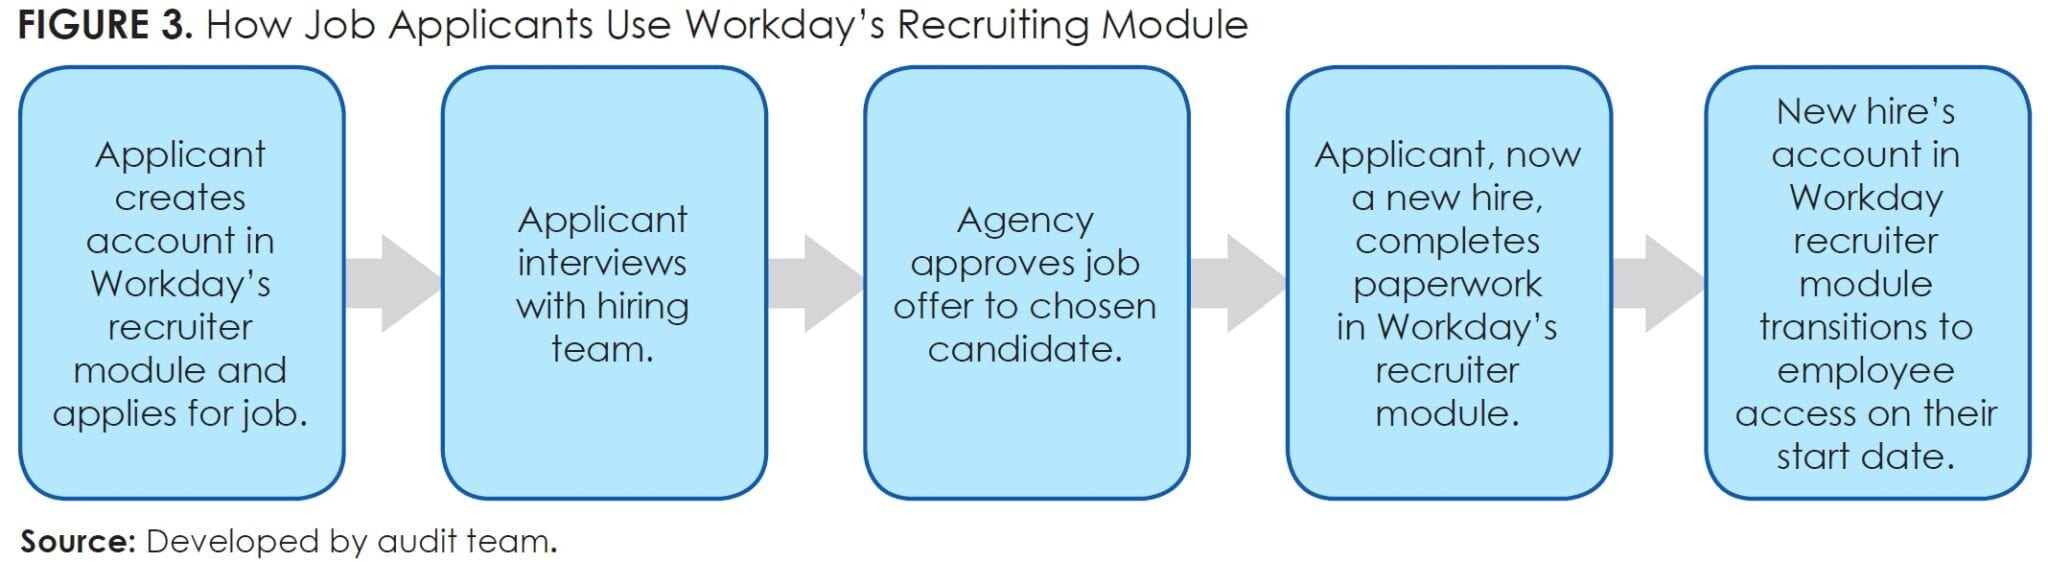 Figure 3_How Job Applicants Use Workday's Recruiting Module